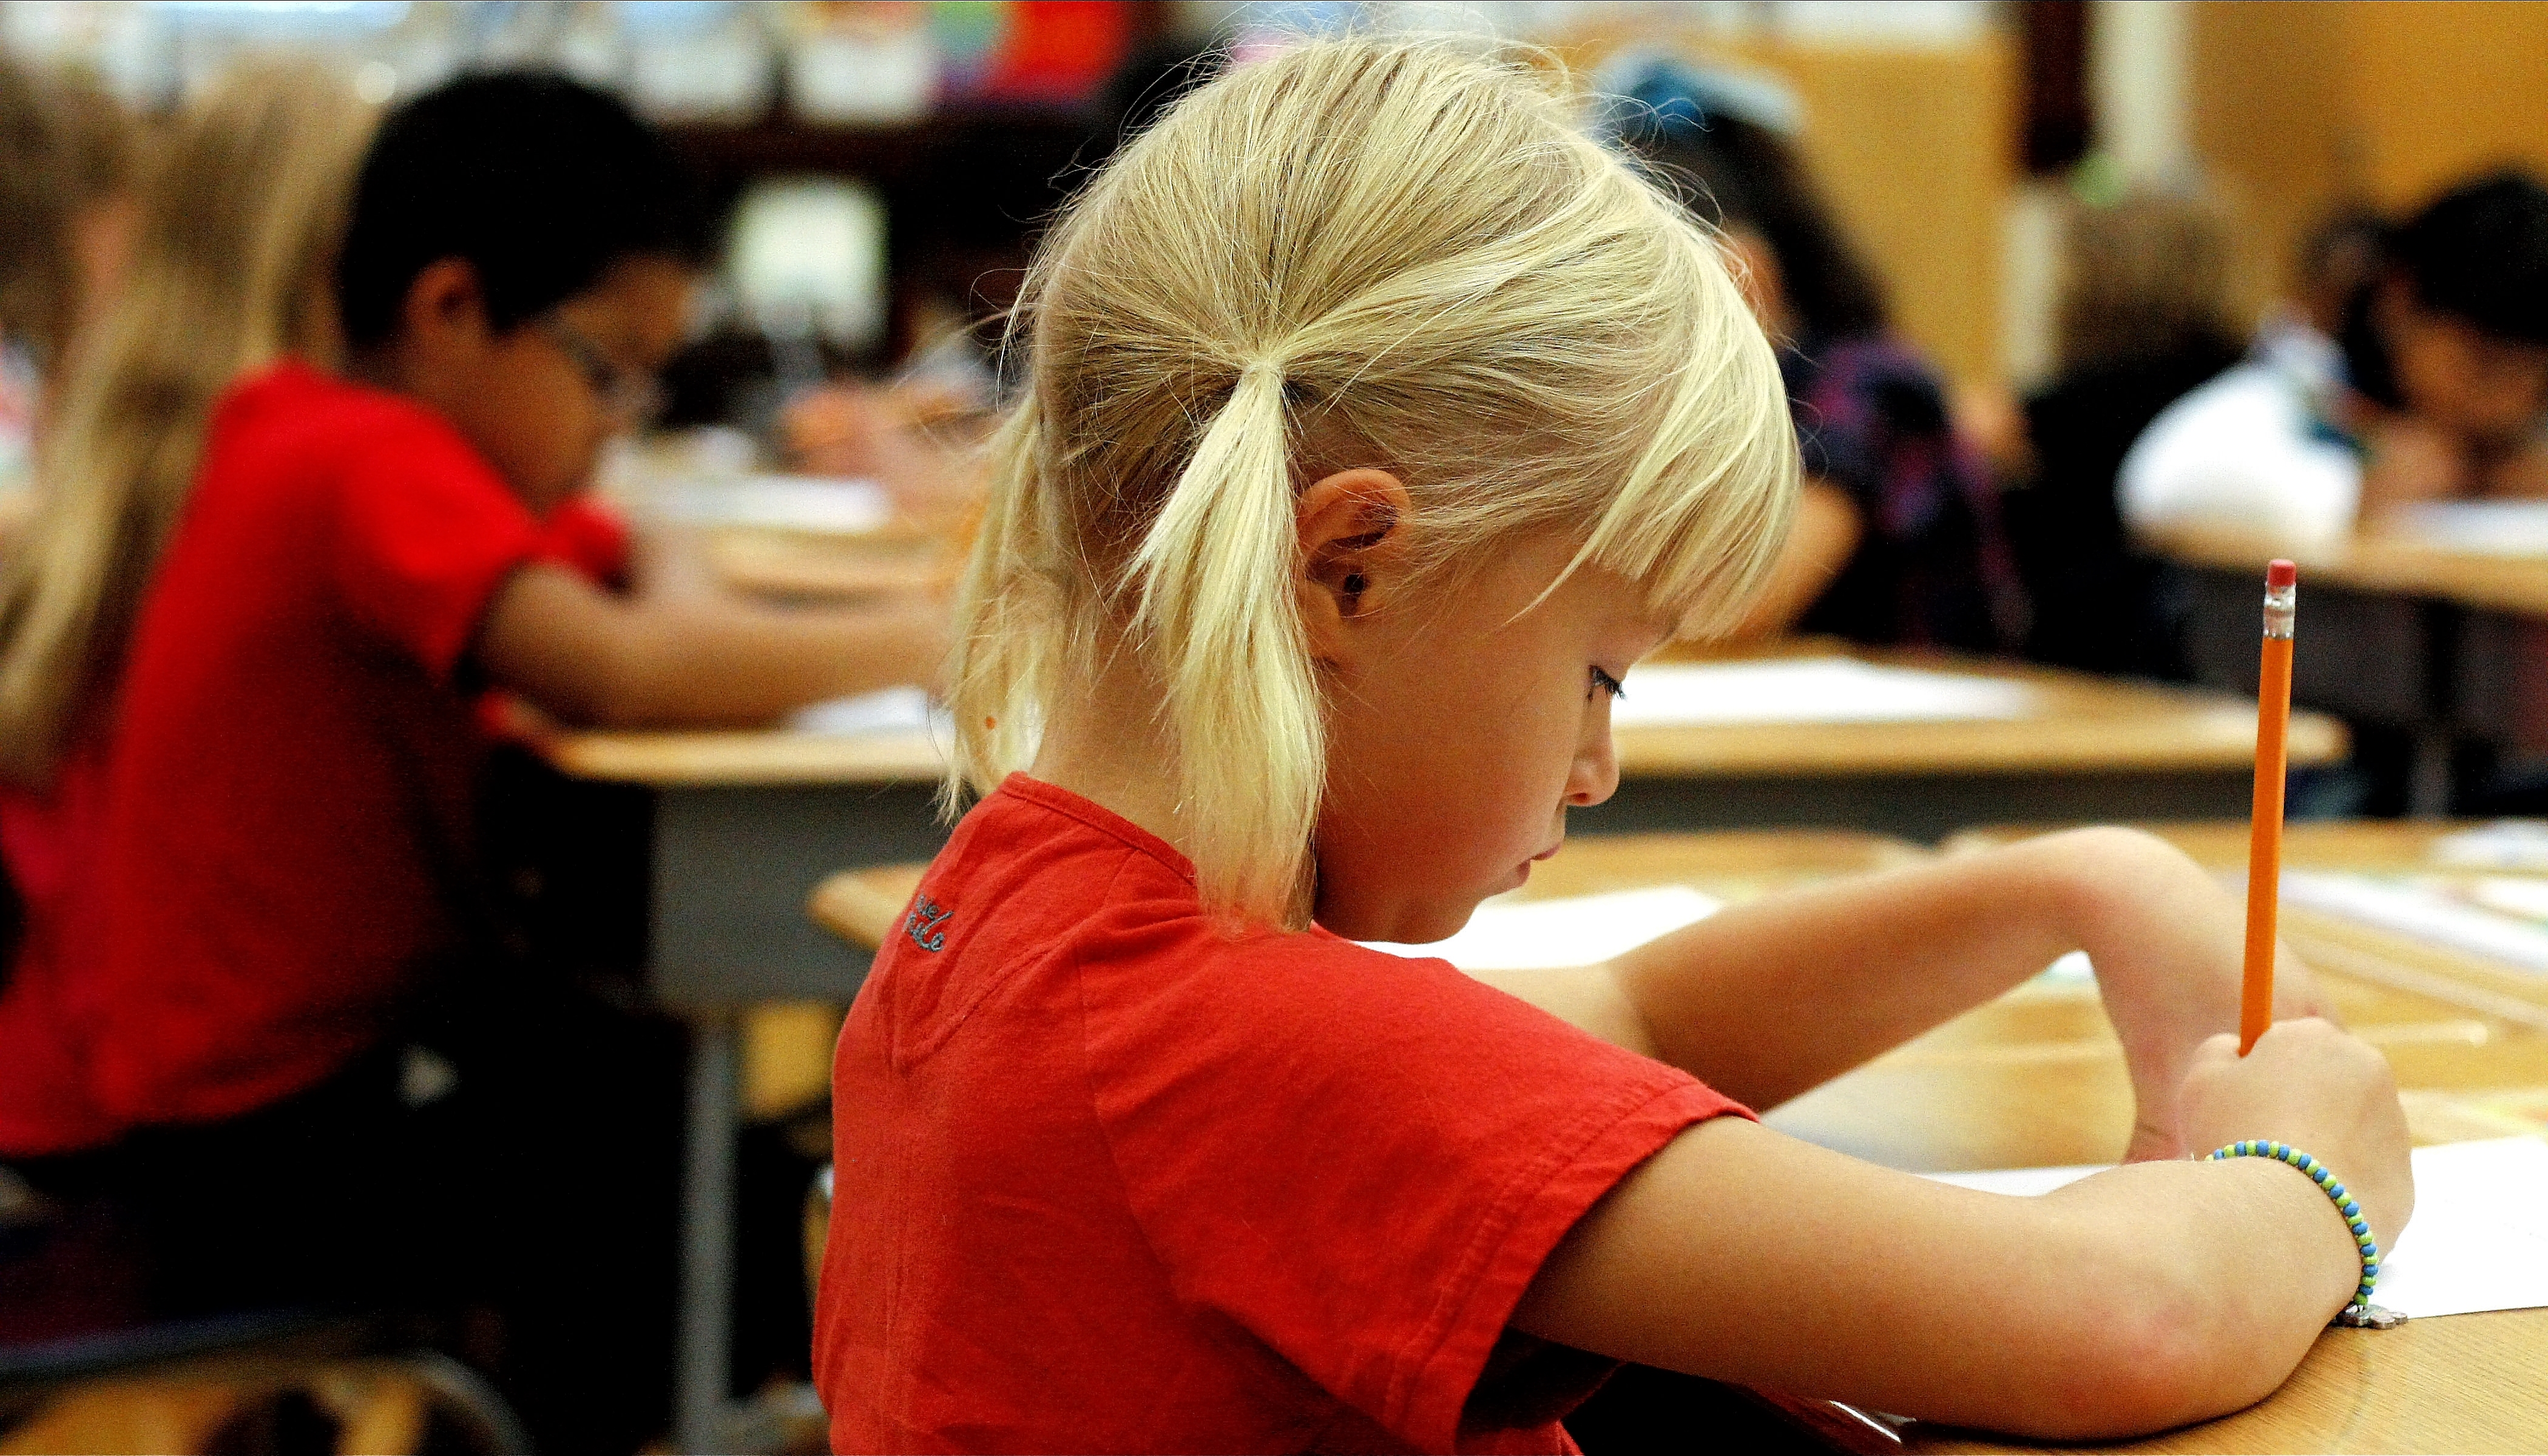 Does Your Child Have Enough Time To Eat At School?